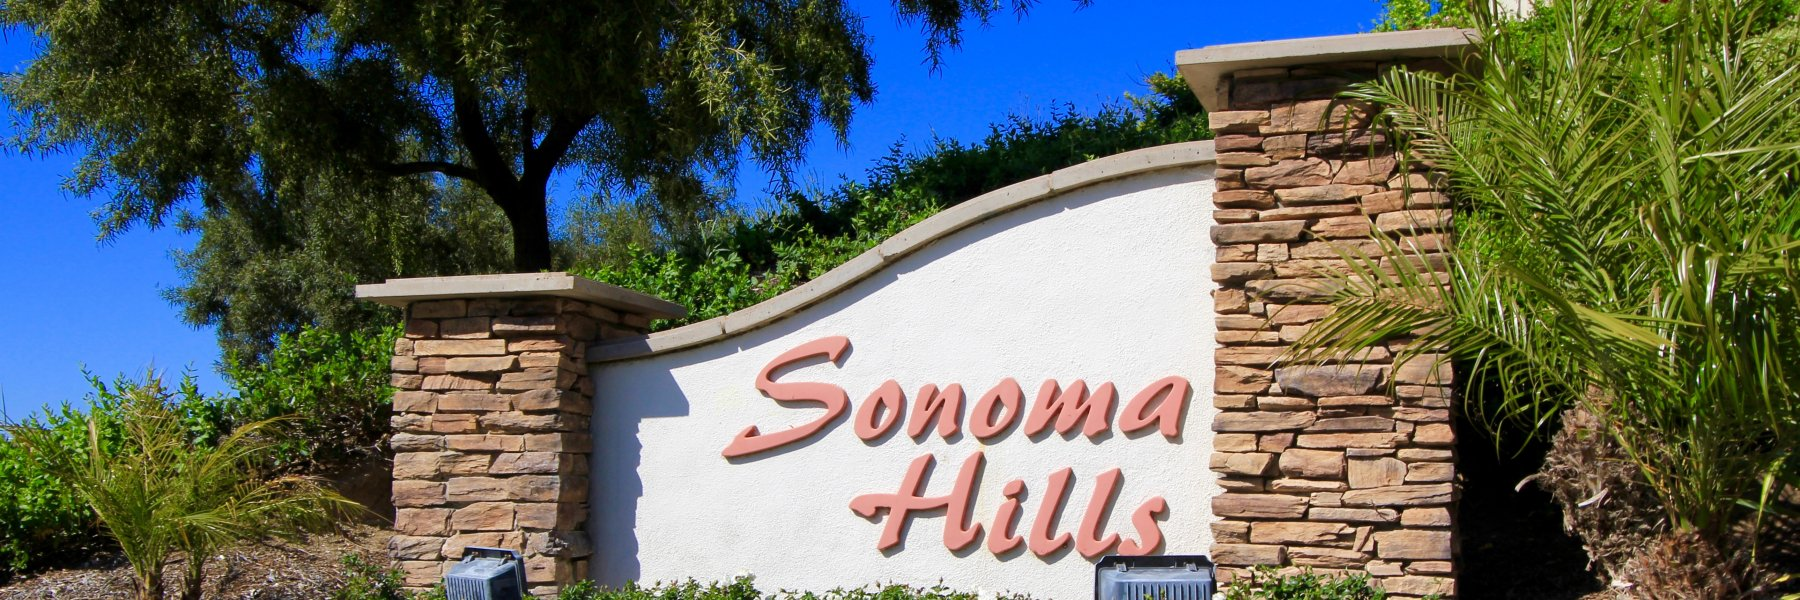 Sonoma Hills is a community of homes in Oceanside California